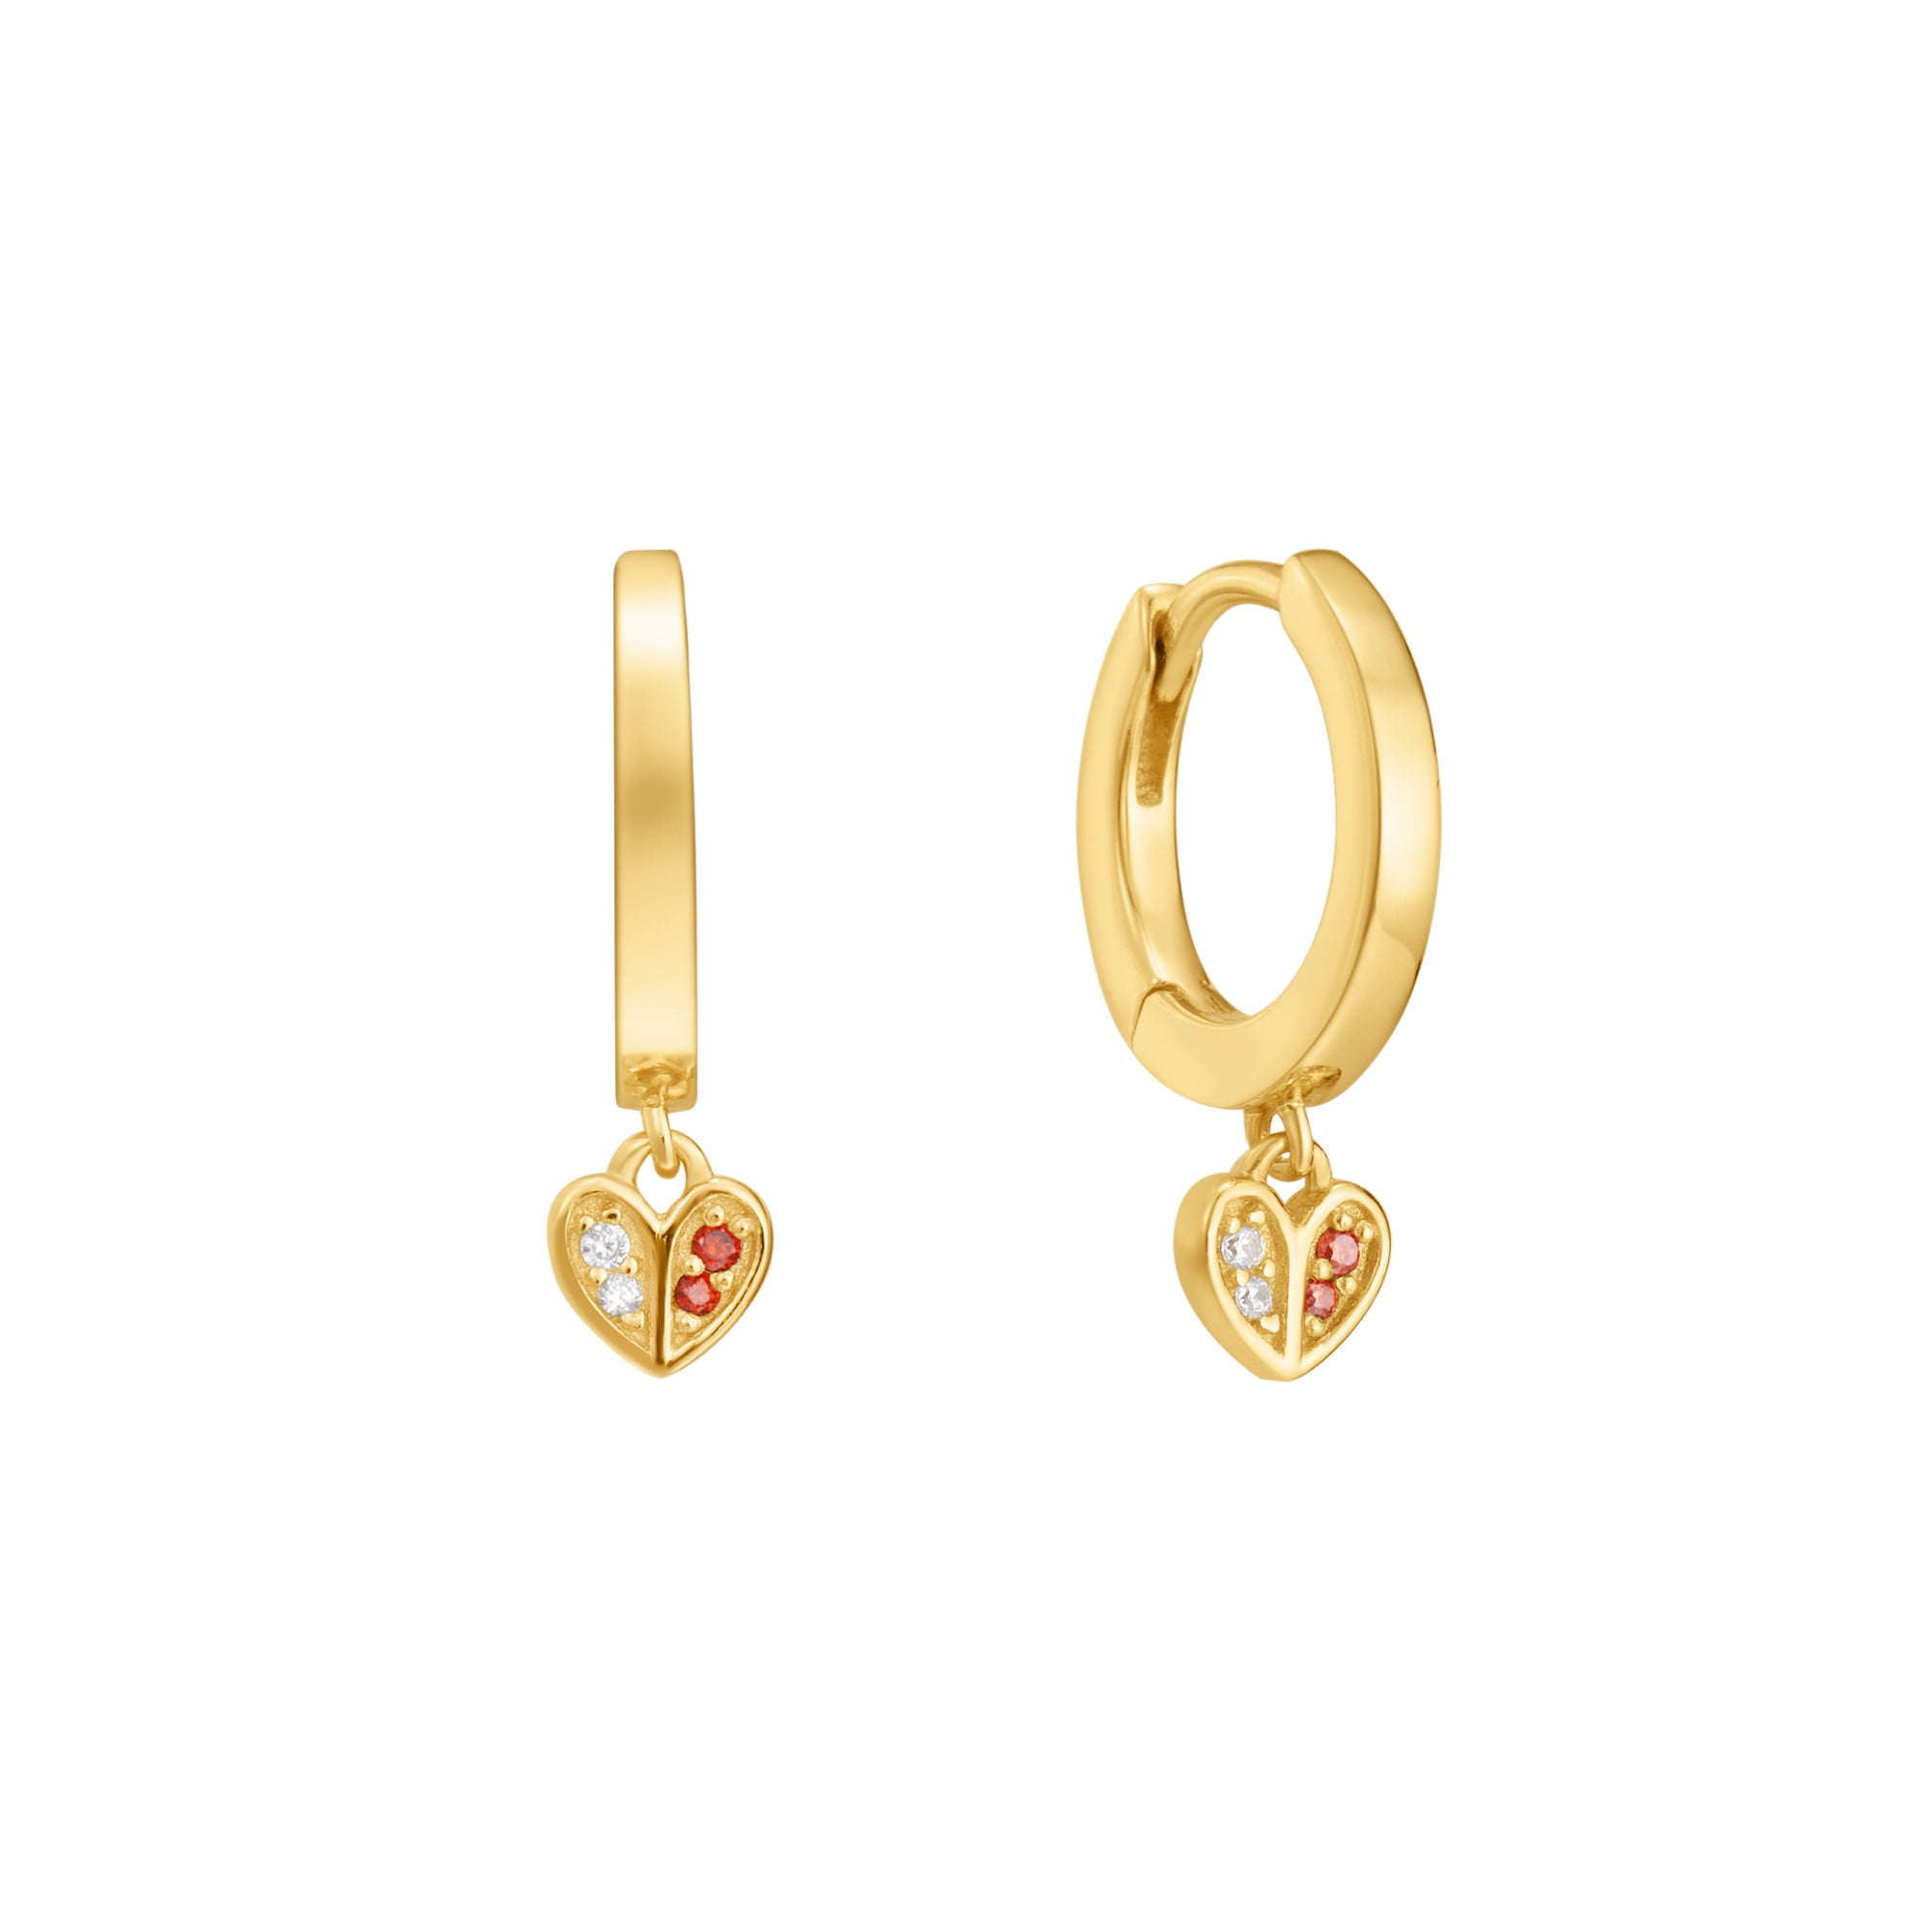 Egeria | Lily Earrings | White & Garnet CZ | 14K Gold Plated 925 Silver